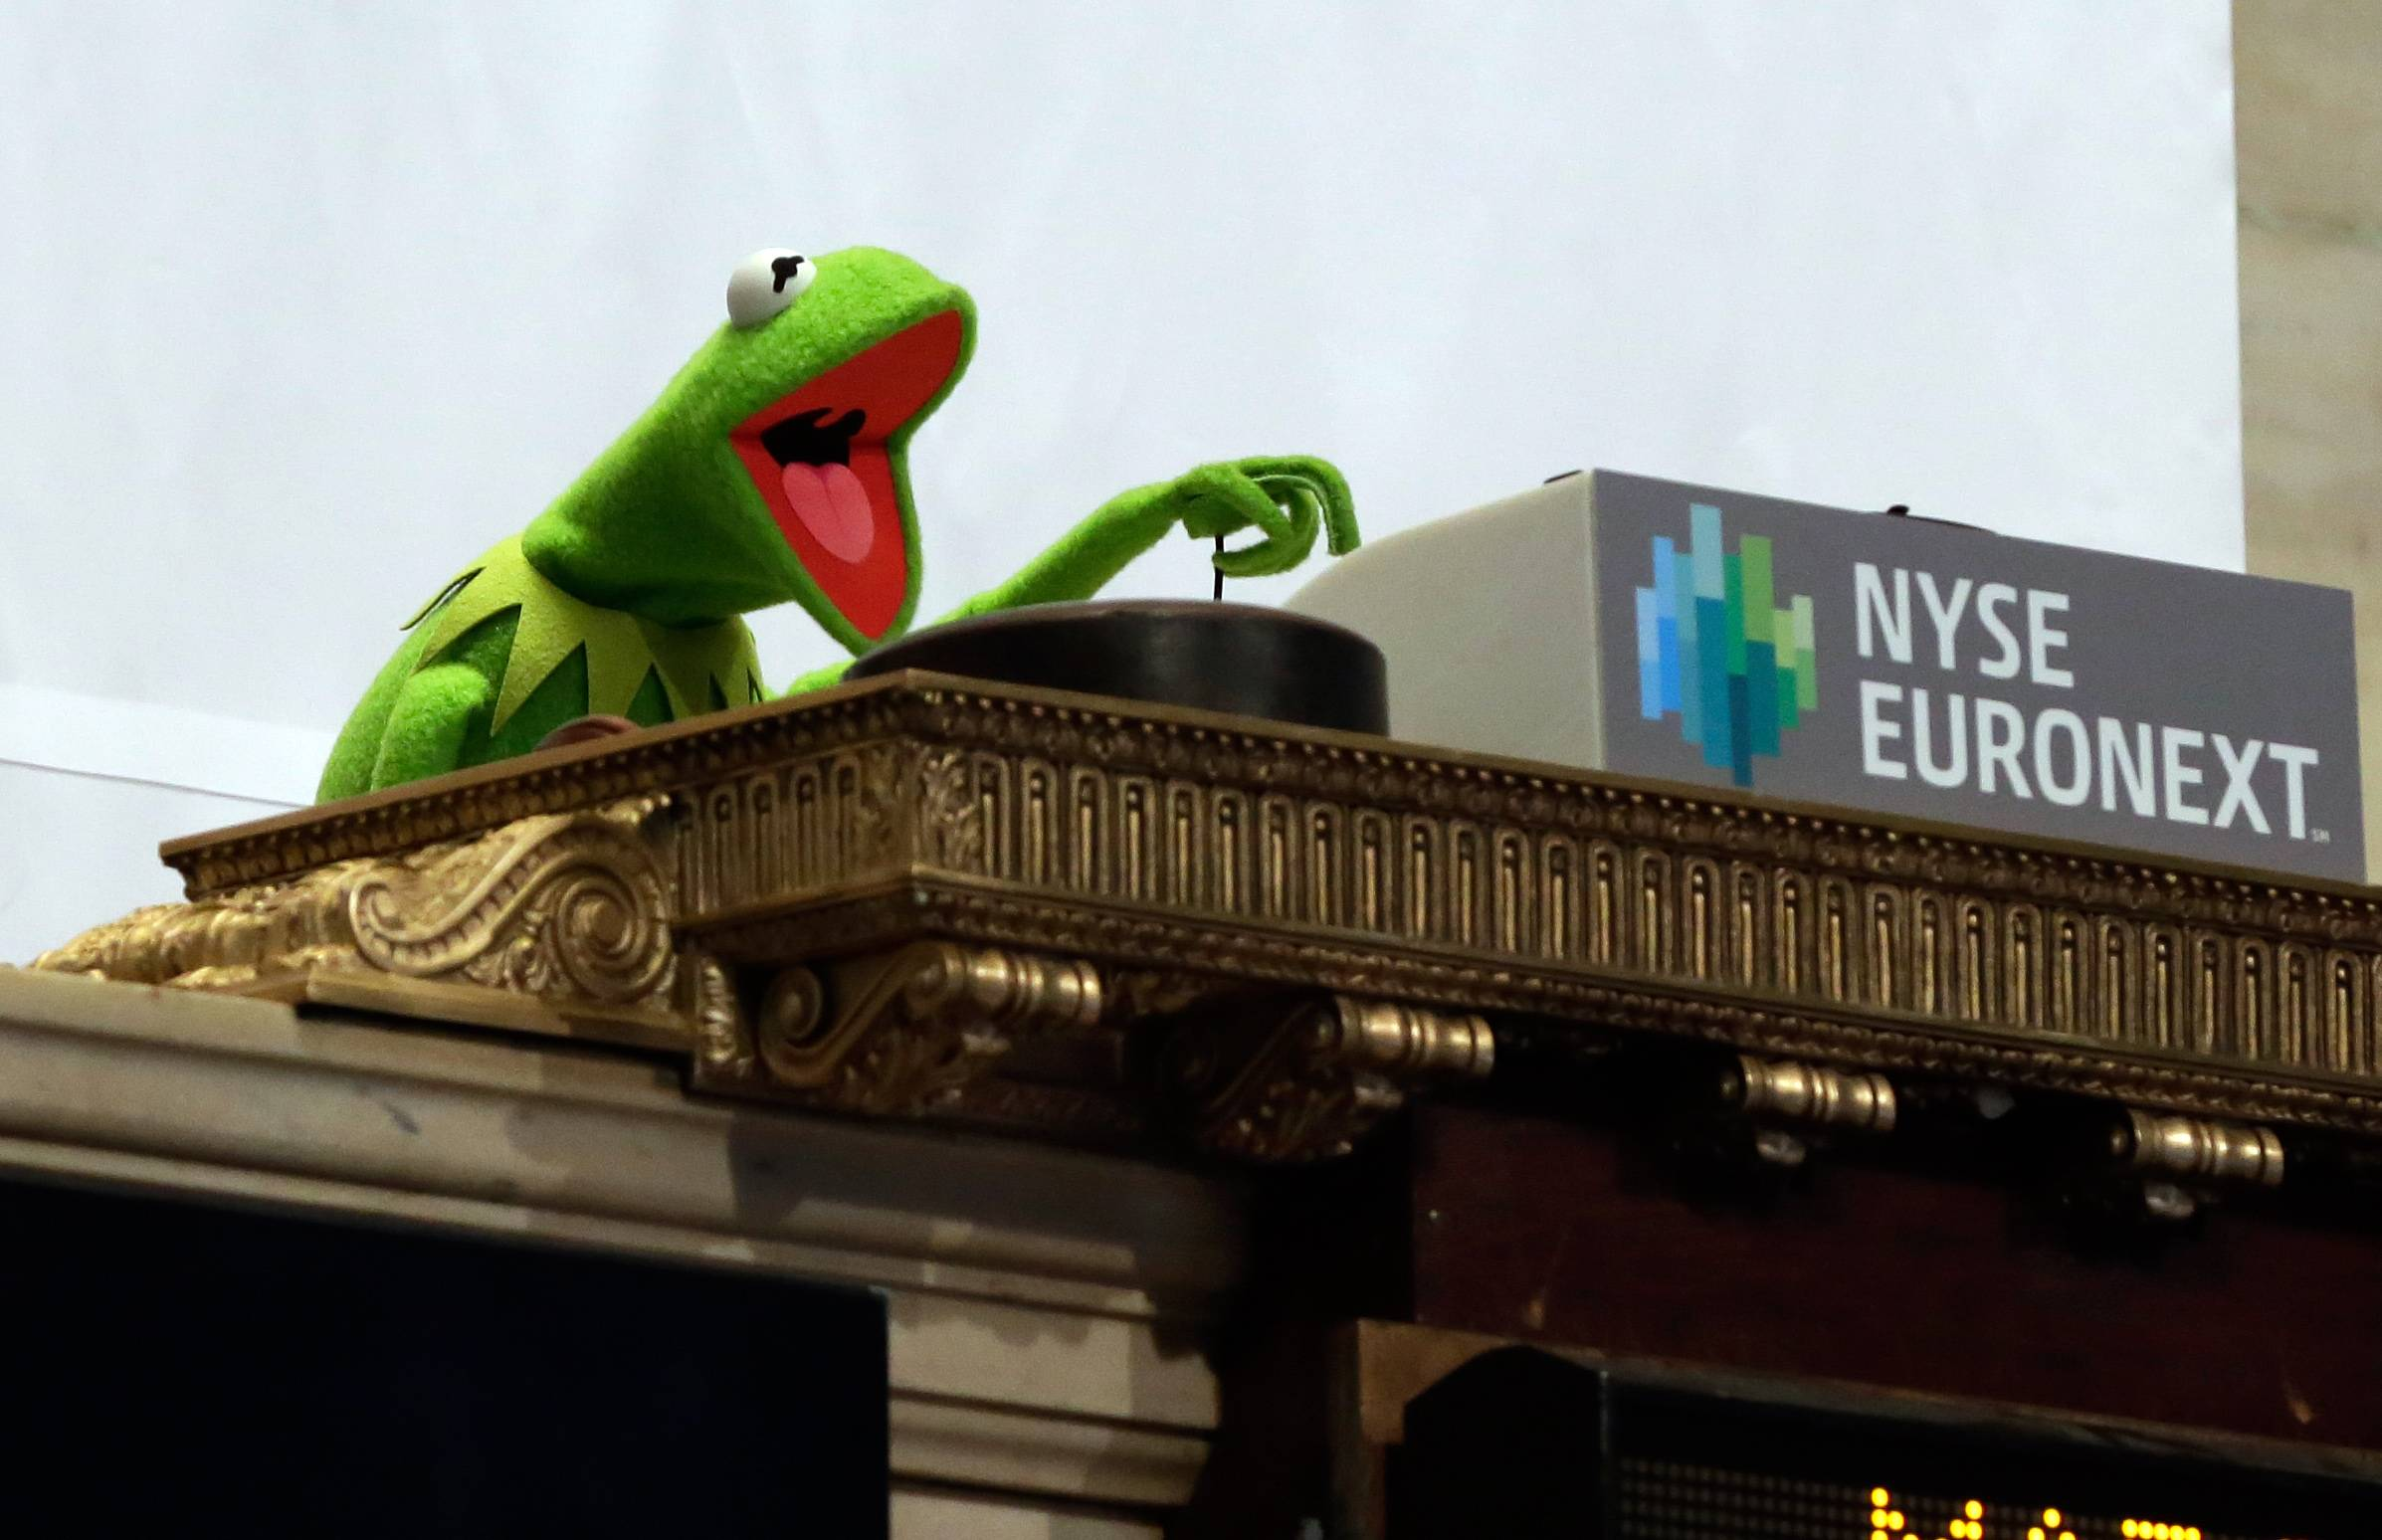 Kermit the Frog brought good luck to the New York Stock Exchange, where he rang the opening bell on Monday, to promote the newest Muppets movie. The Standard & Poor's 500 Index rose, rebounding from its worst week since January, as data showing a gain in industrial production boosted optimism over the economy and investors watched developments in Ukraine.